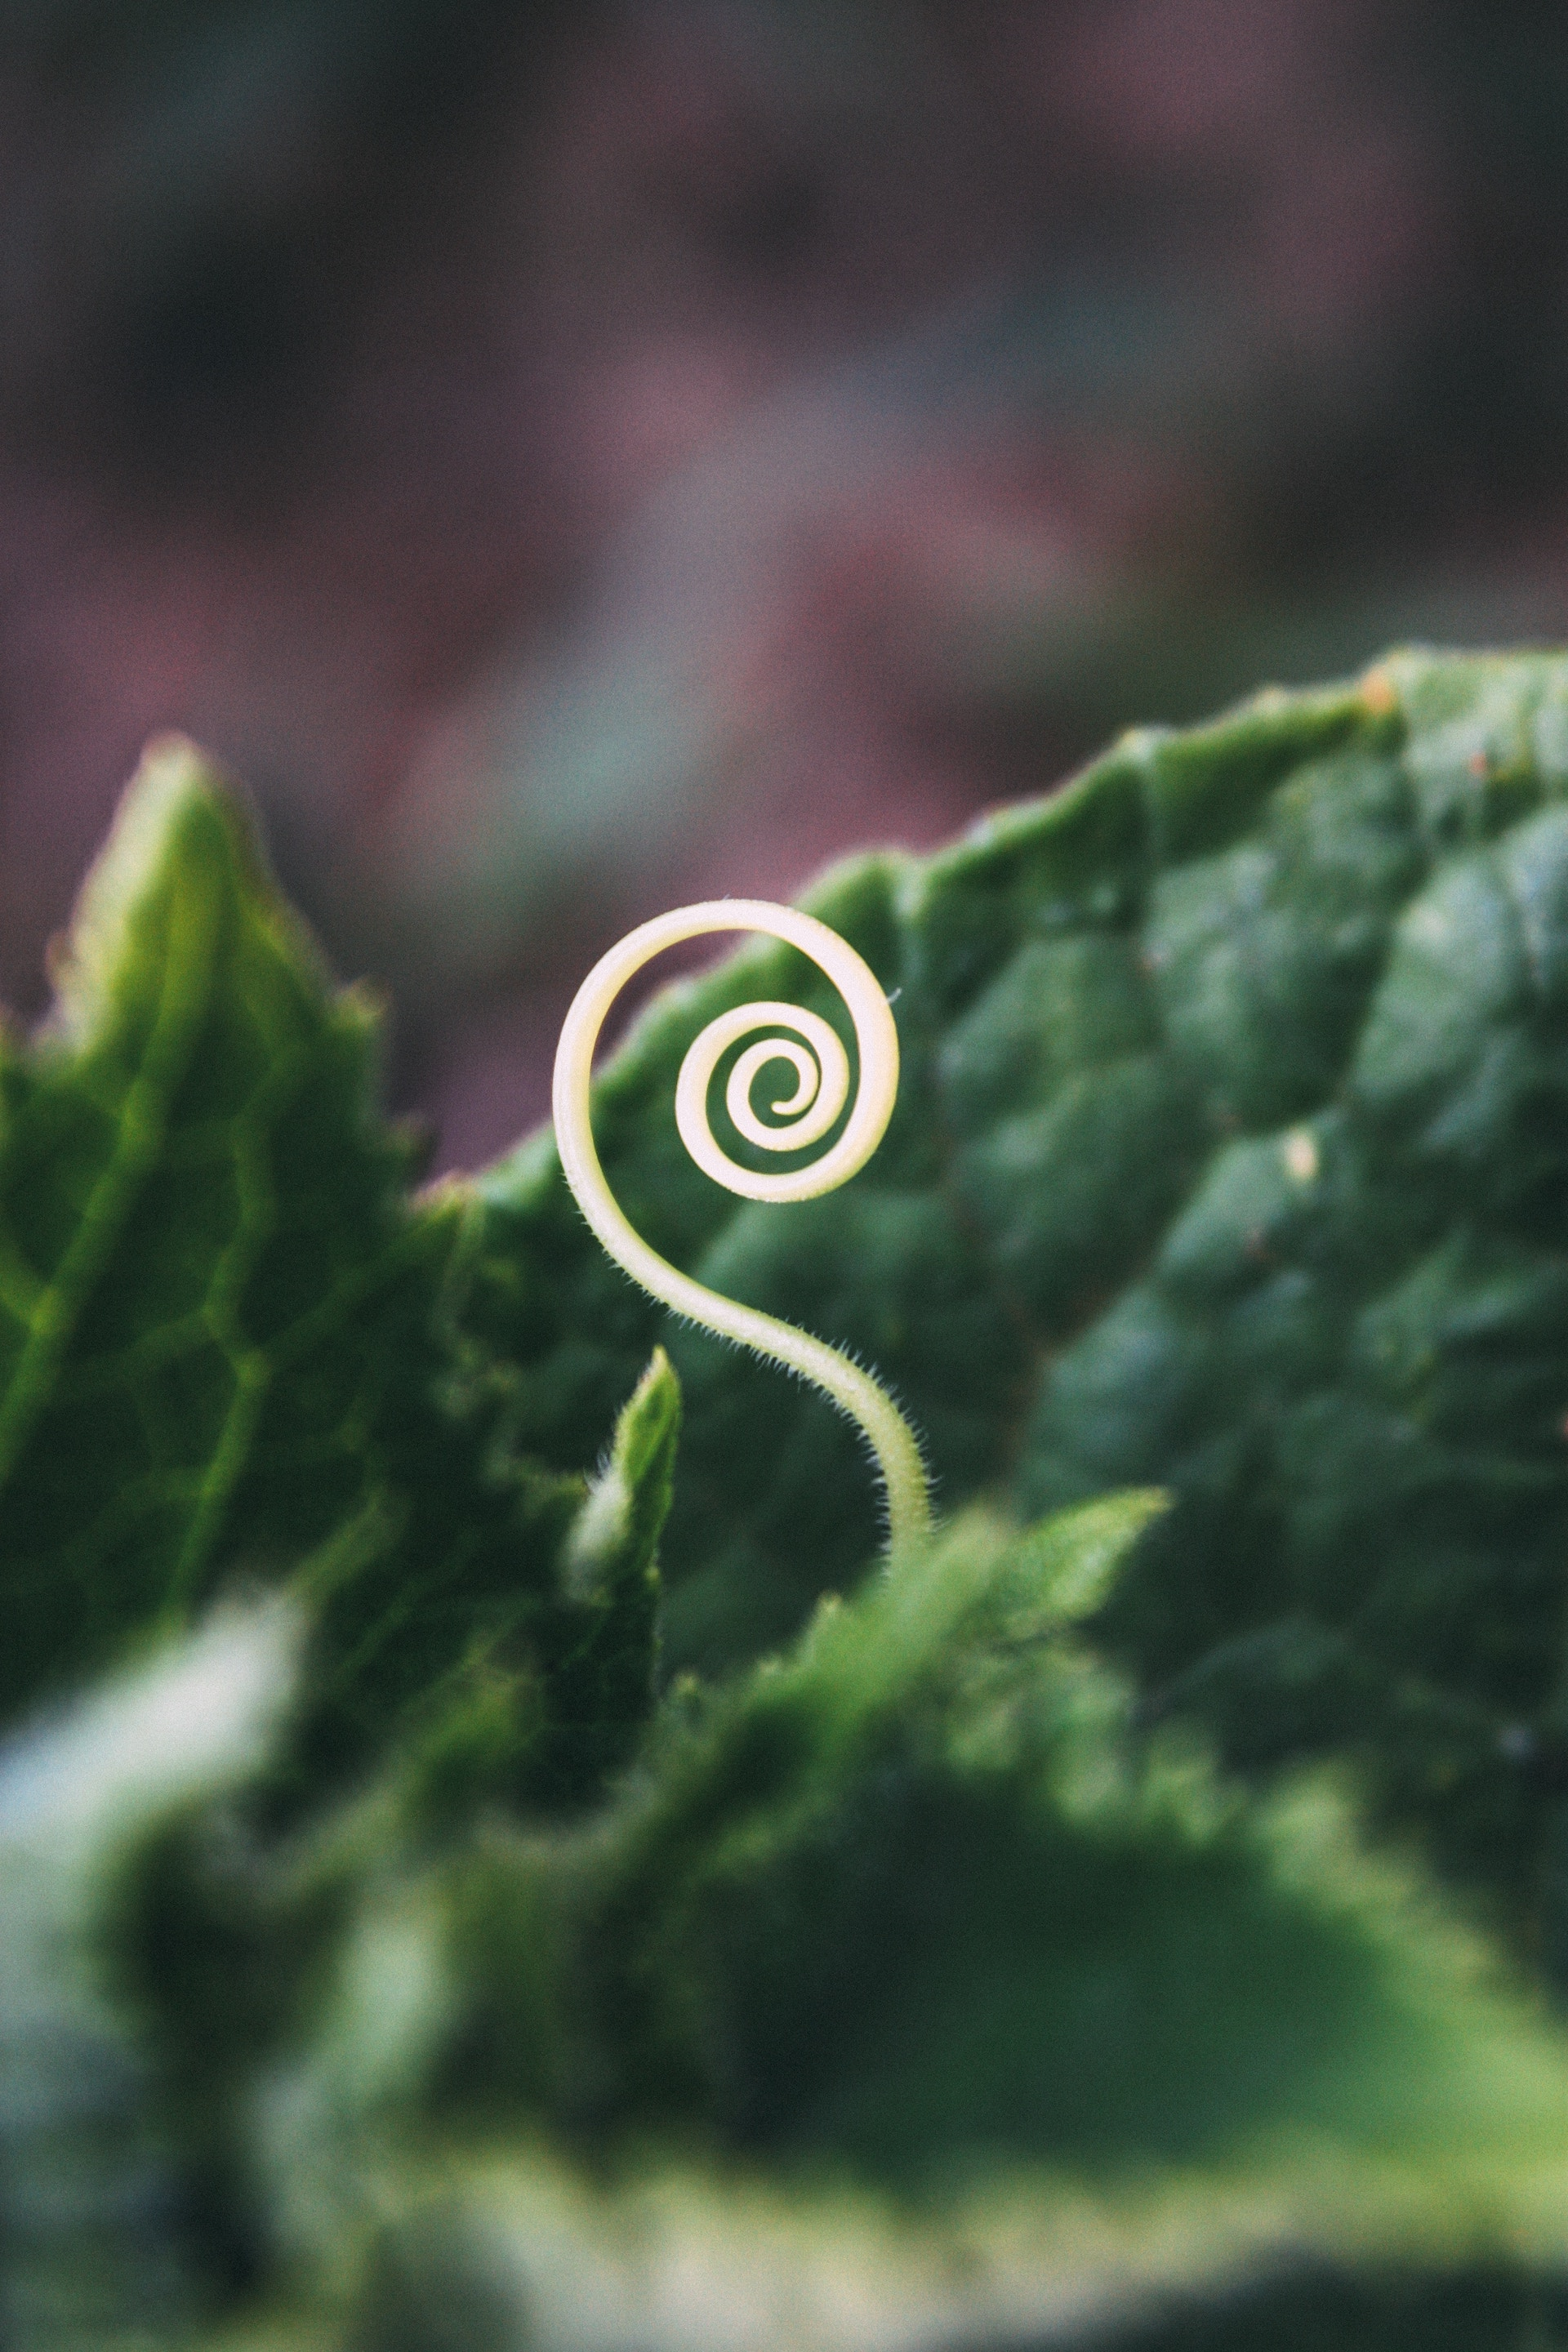 tendril-bogomil-mihaylov-519199-unsplash